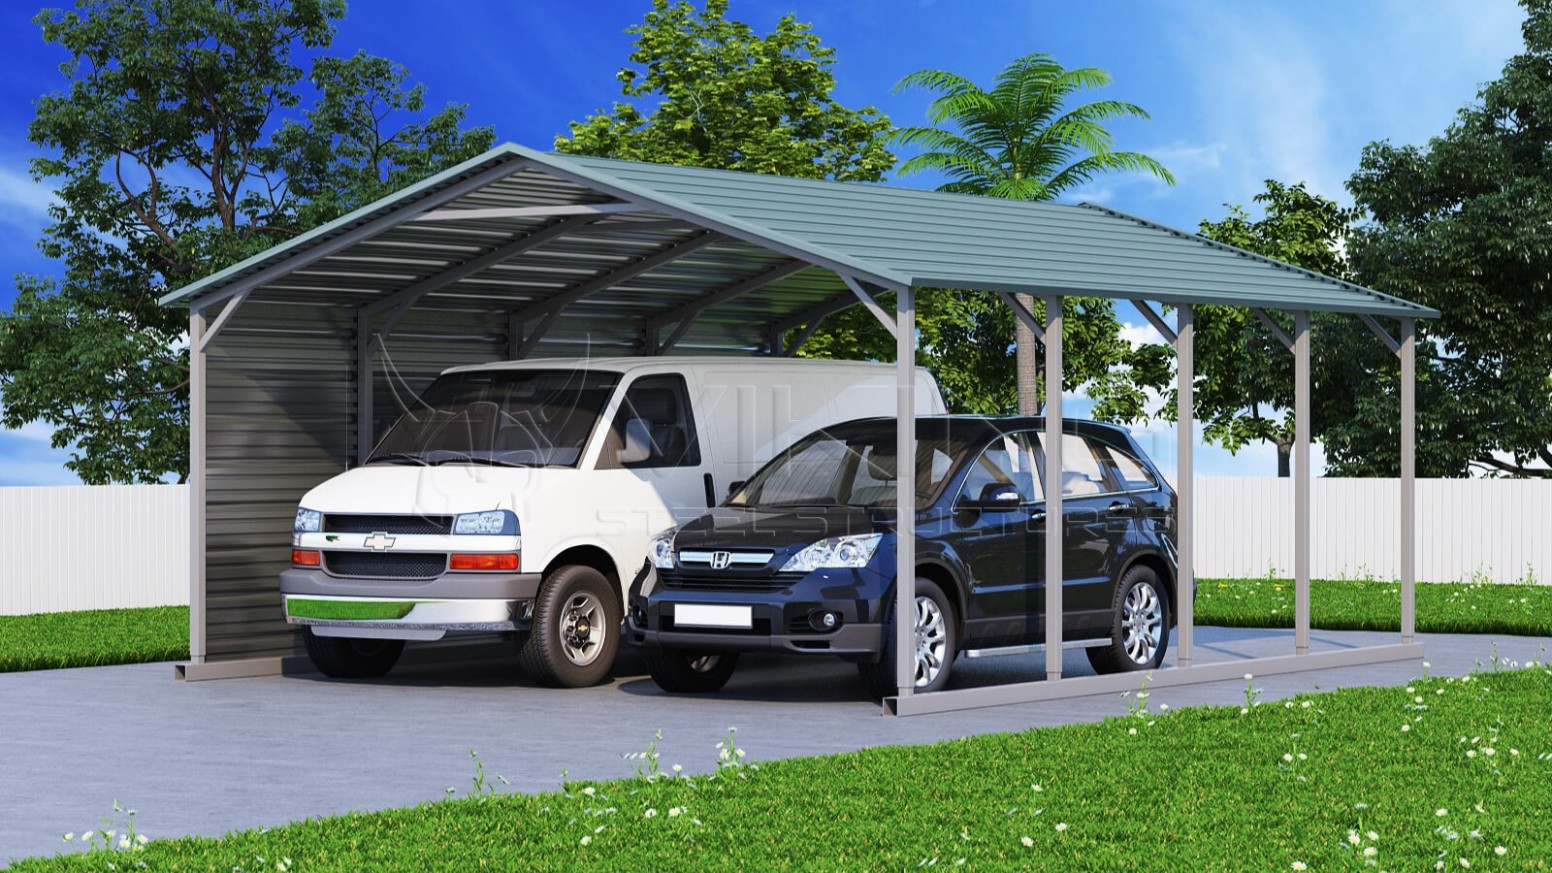 10 New Thoughts About Buy A Carport That Will Turn Your World Upside Down | buy a carport